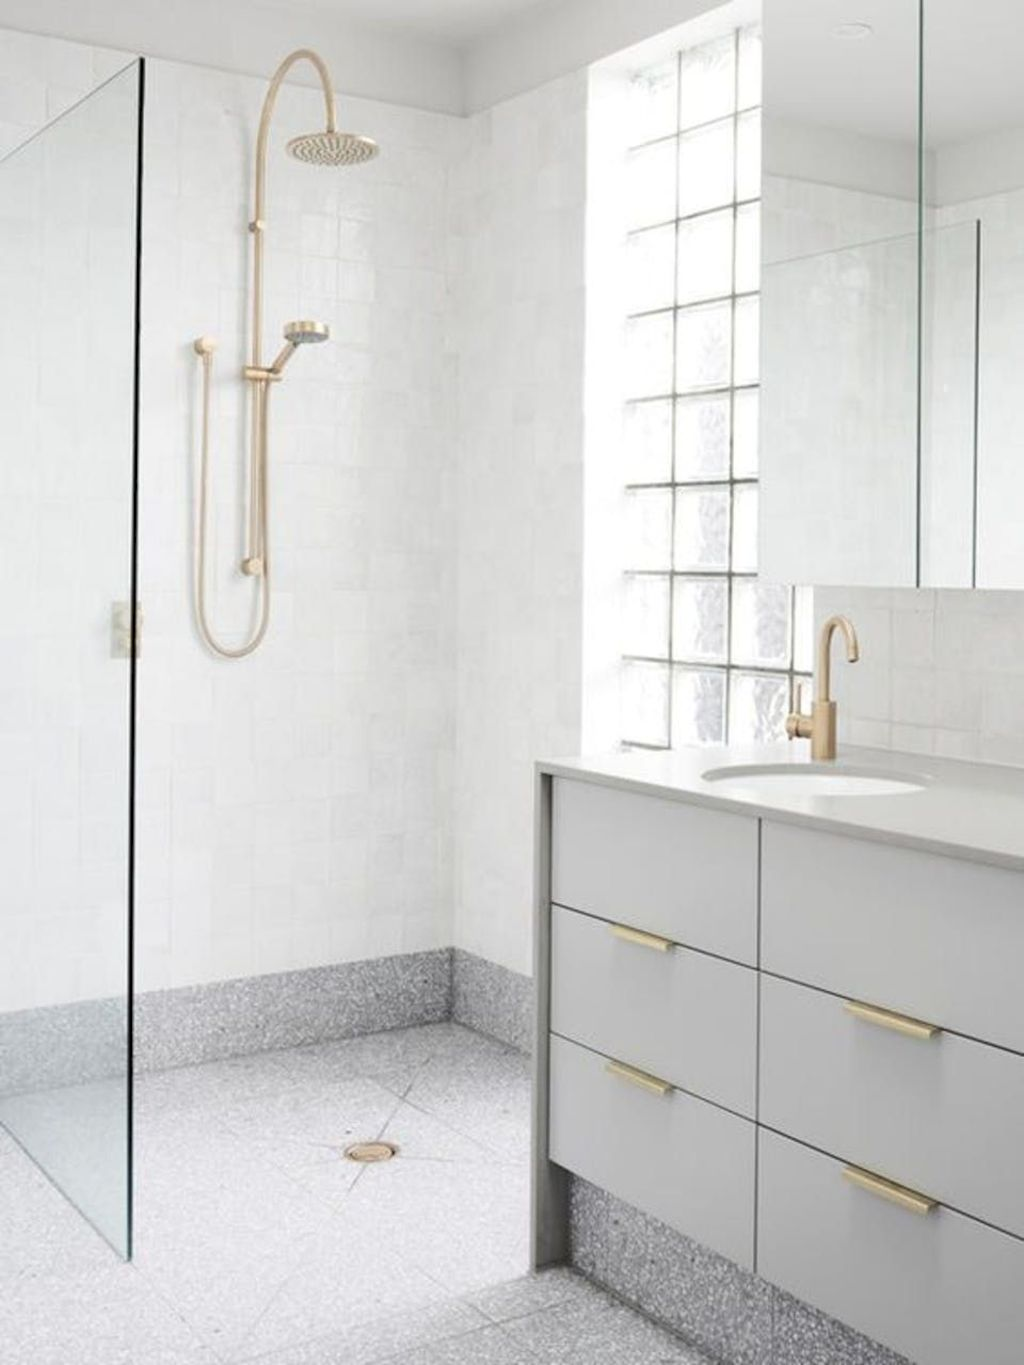 Creative bathroom updates mixing modern trend with simple 60s terrazzo style giving a brilliant contemporary balance Image 11